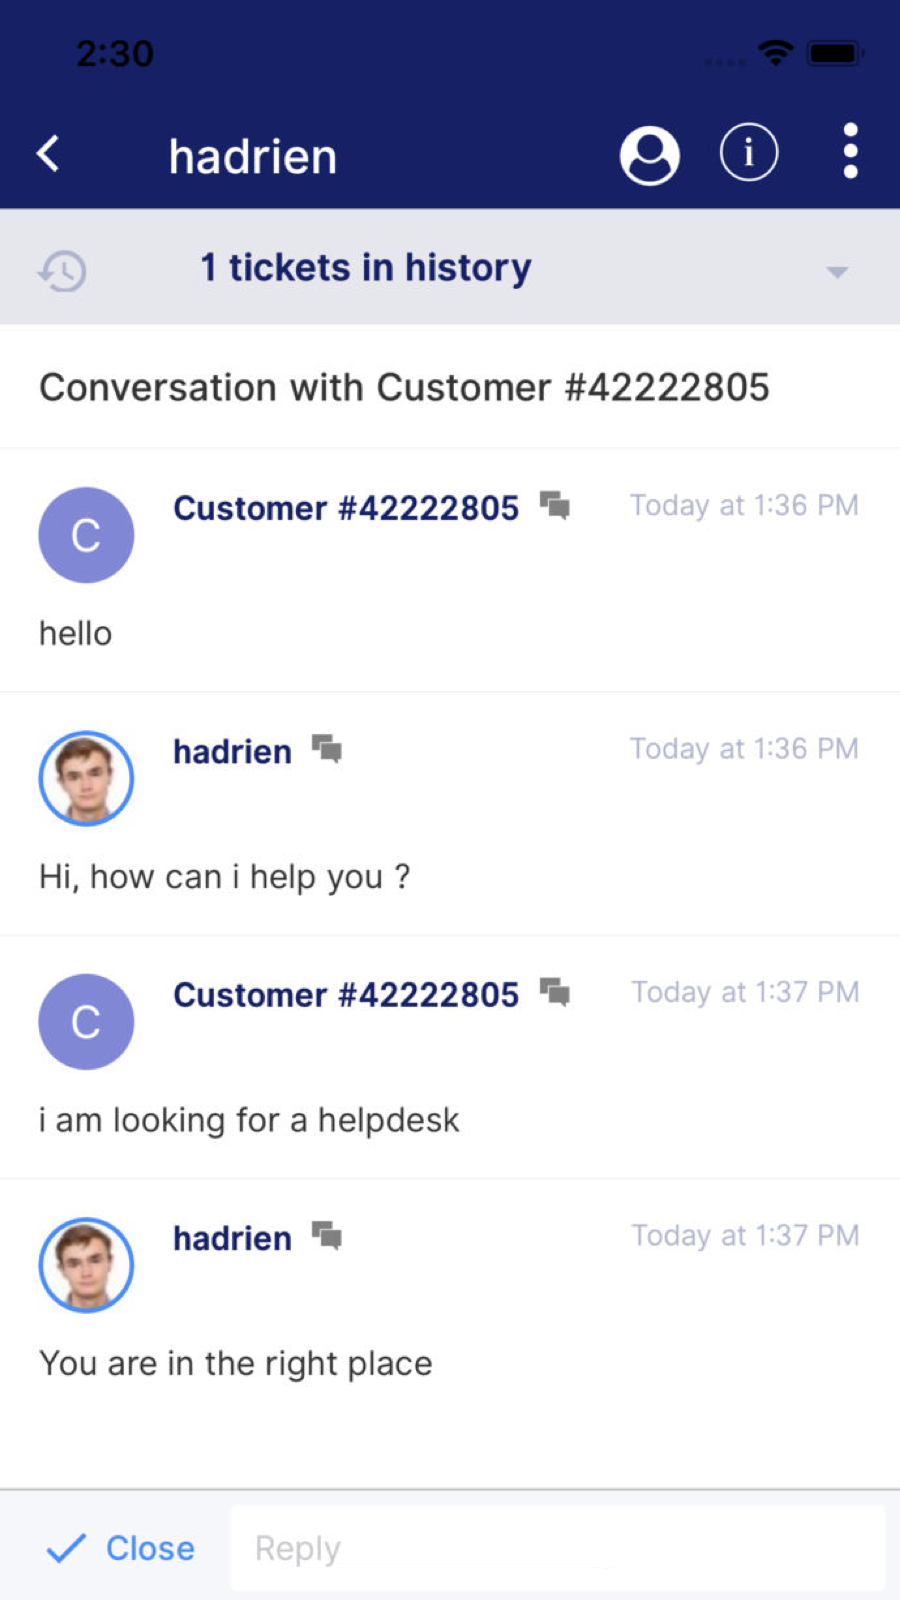 Live Chat with your customer support from anywhere